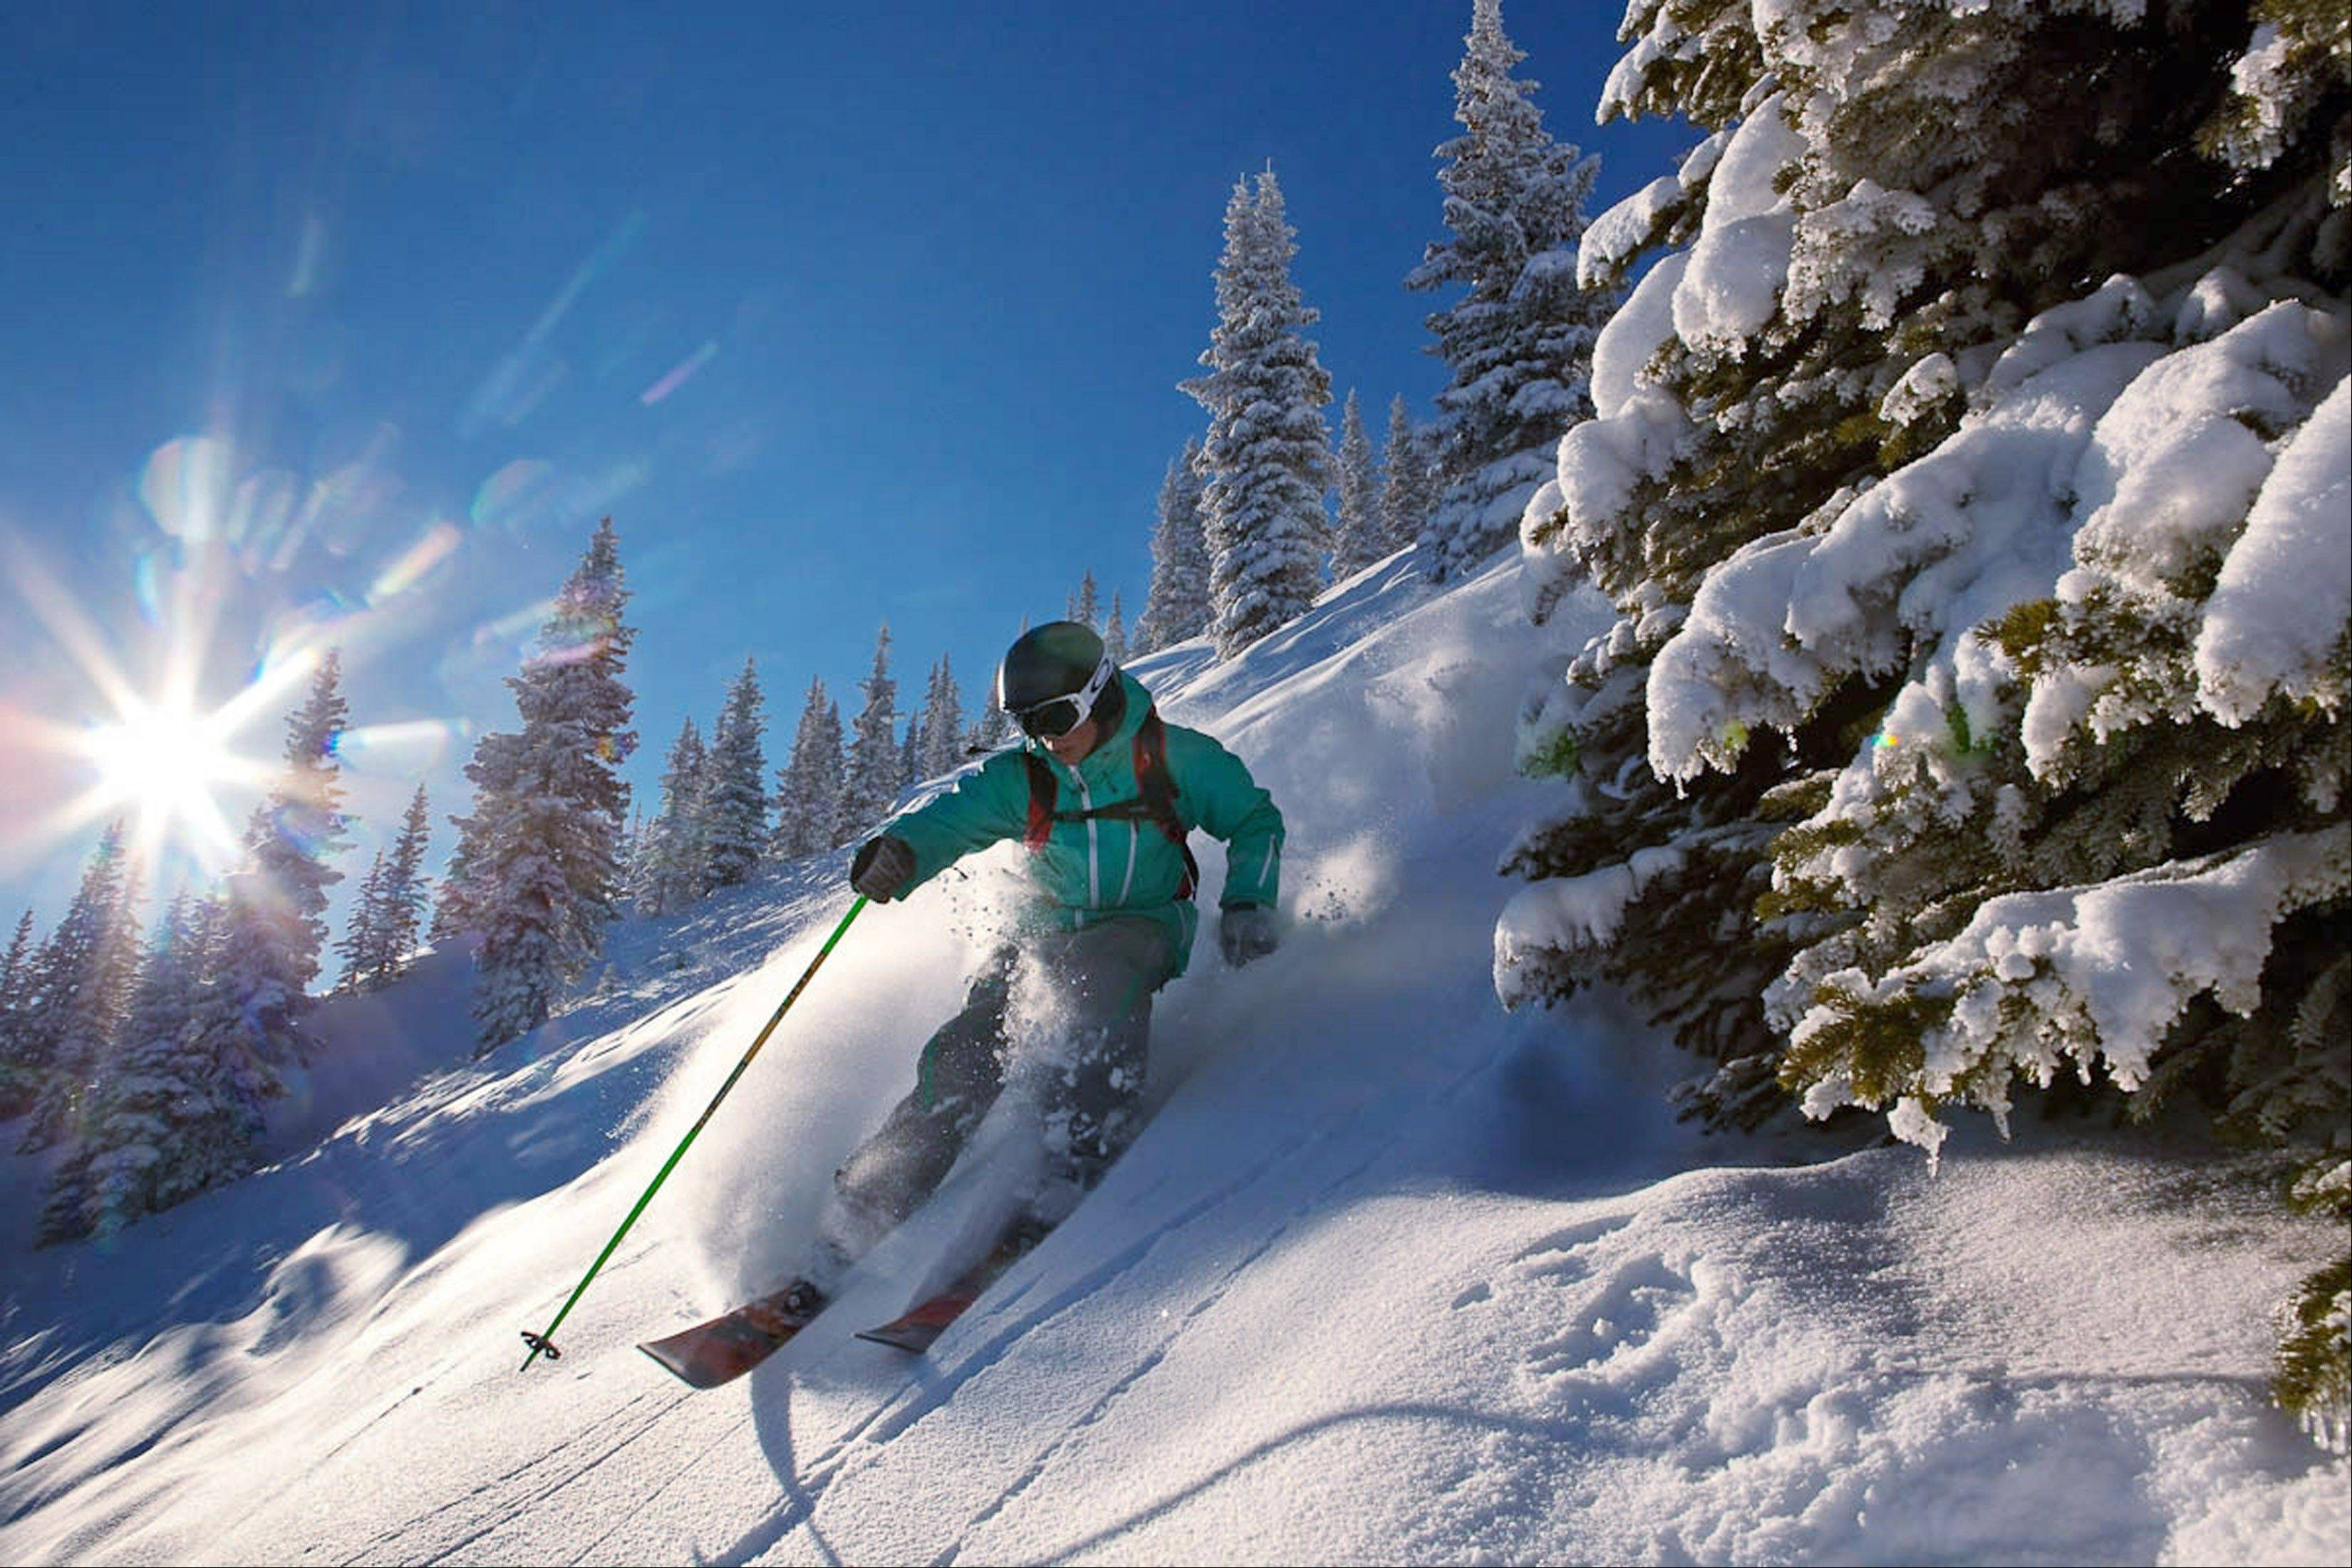 A skier makes his way down the slopes in Aspen, Colo.